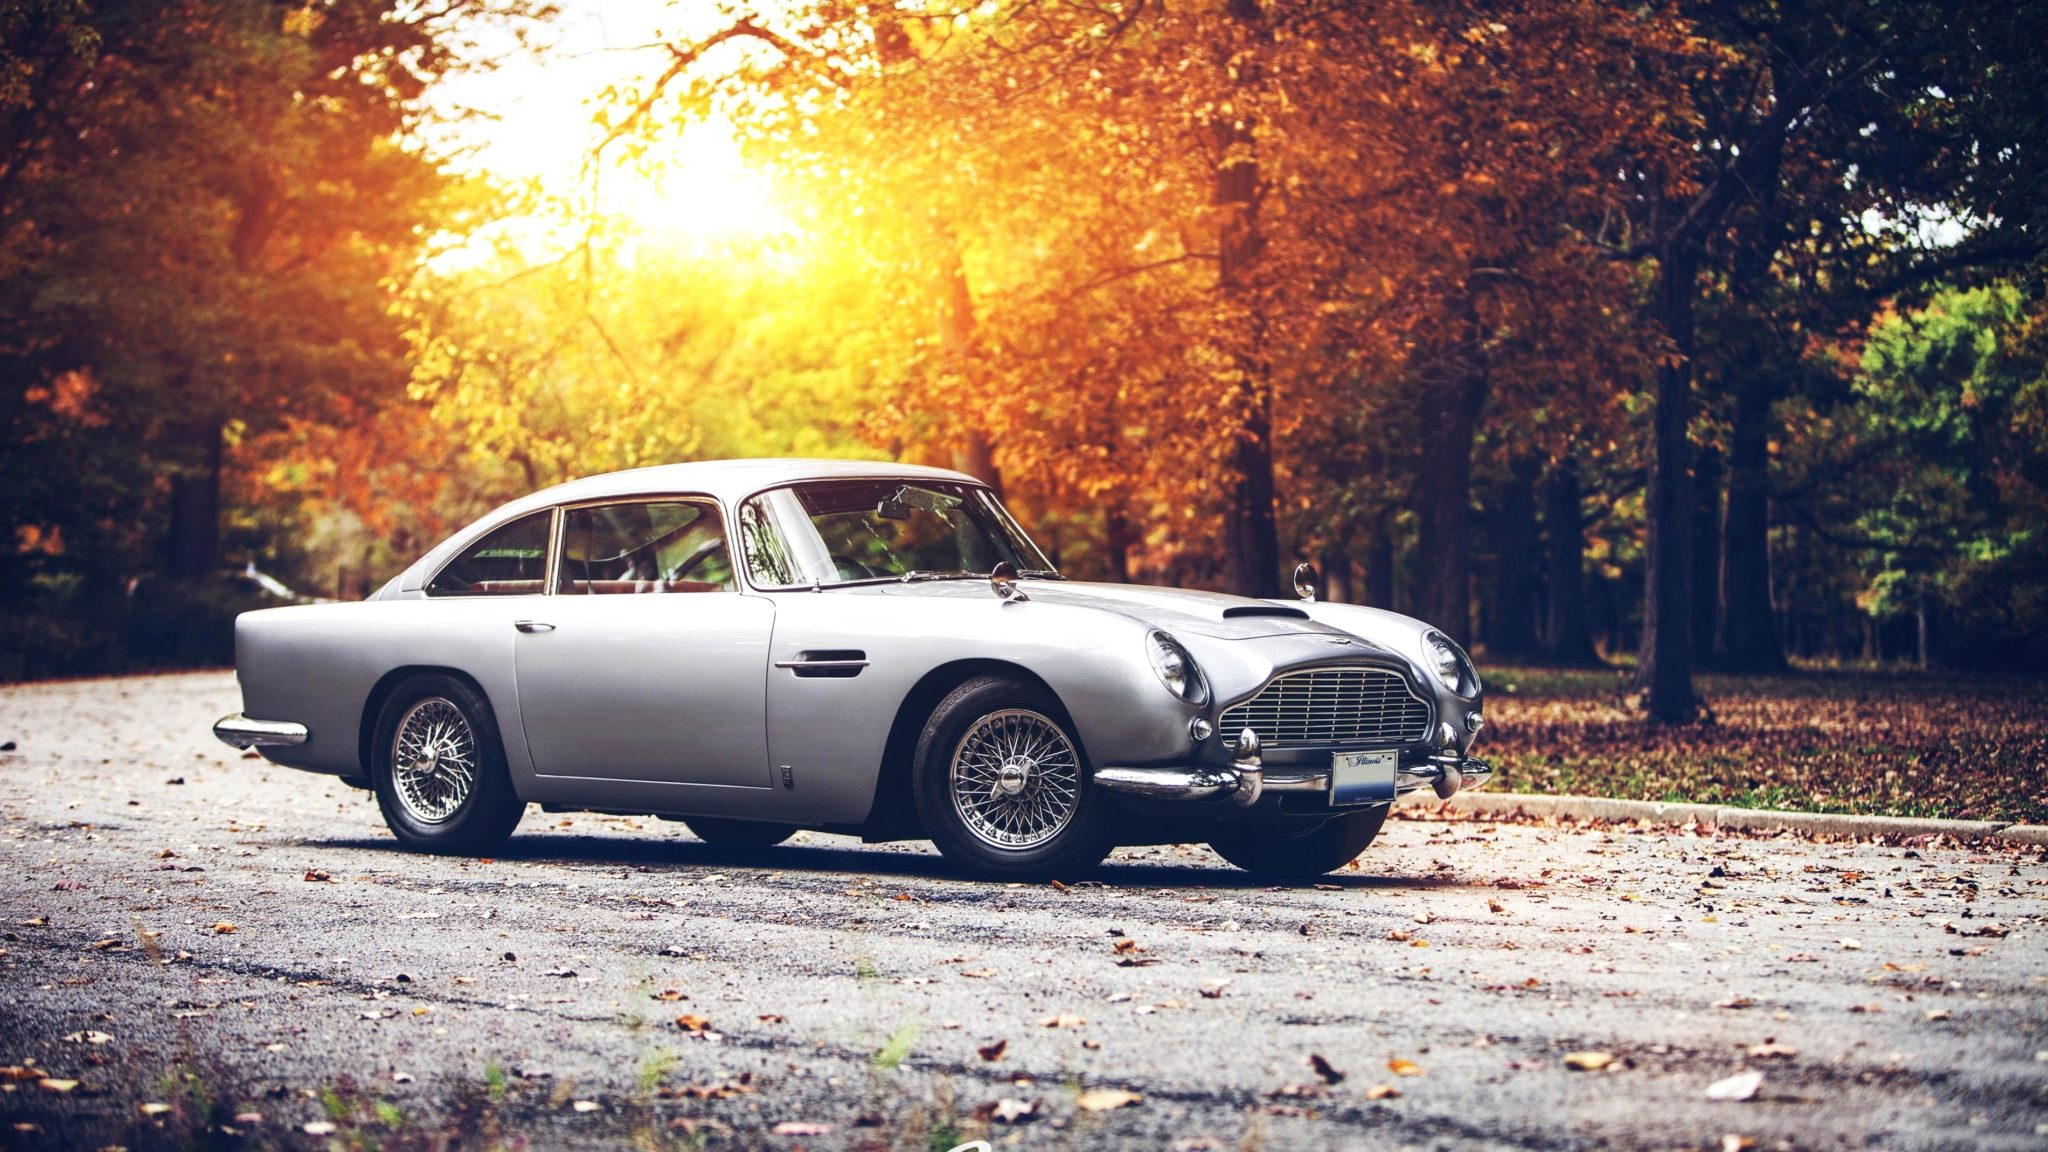 The-Best-Vintage-Car-Wallpapers-11-Best Vintage Car-wv-aston martin-ferarri